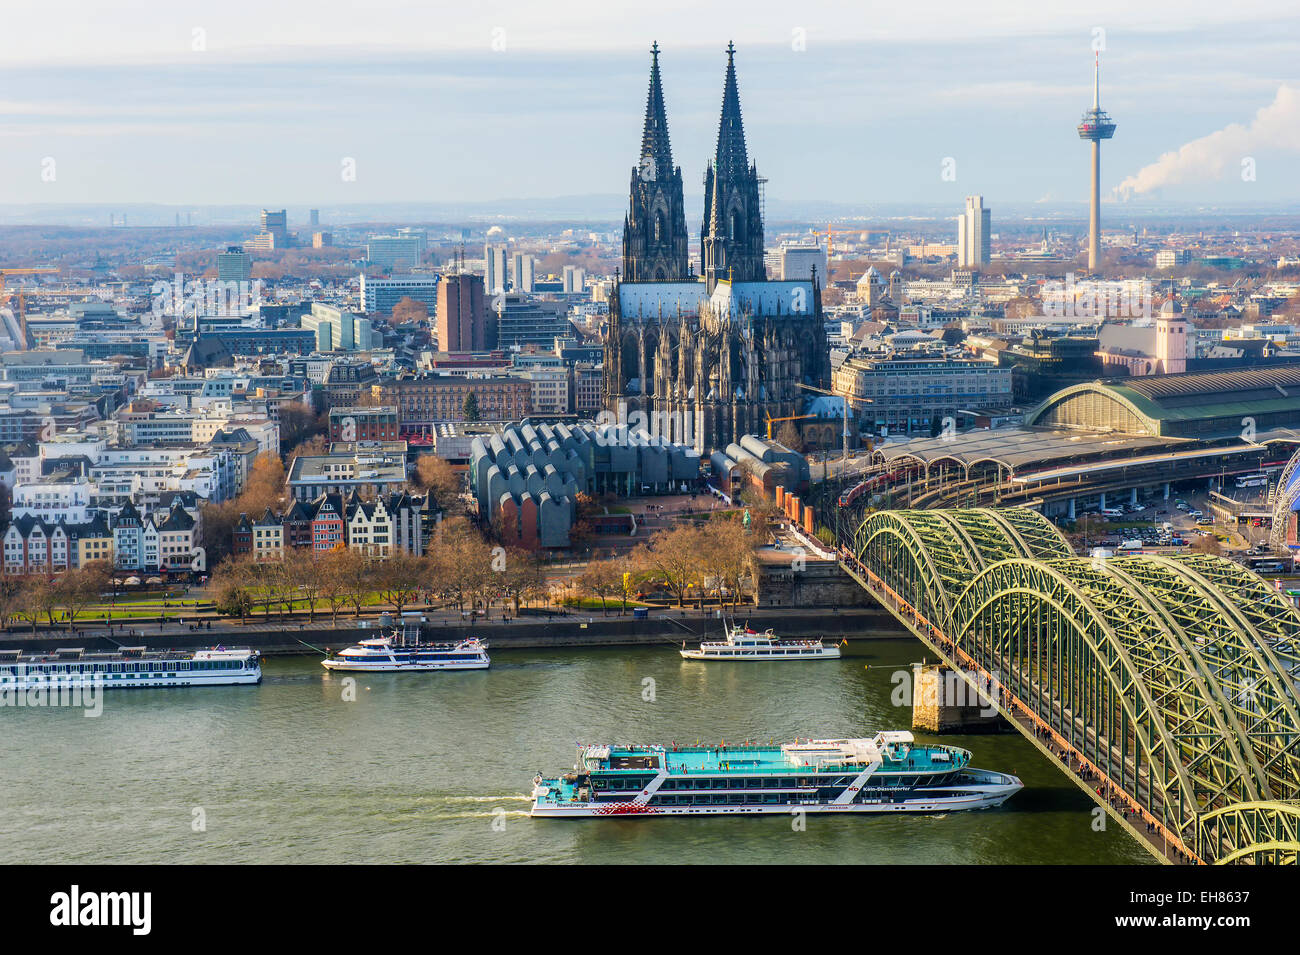 Cologne Cathedral and Hohenzollern Bridge, Cologne (Koln), North Rhine Westphalia, Germany, Europe - Stock Image